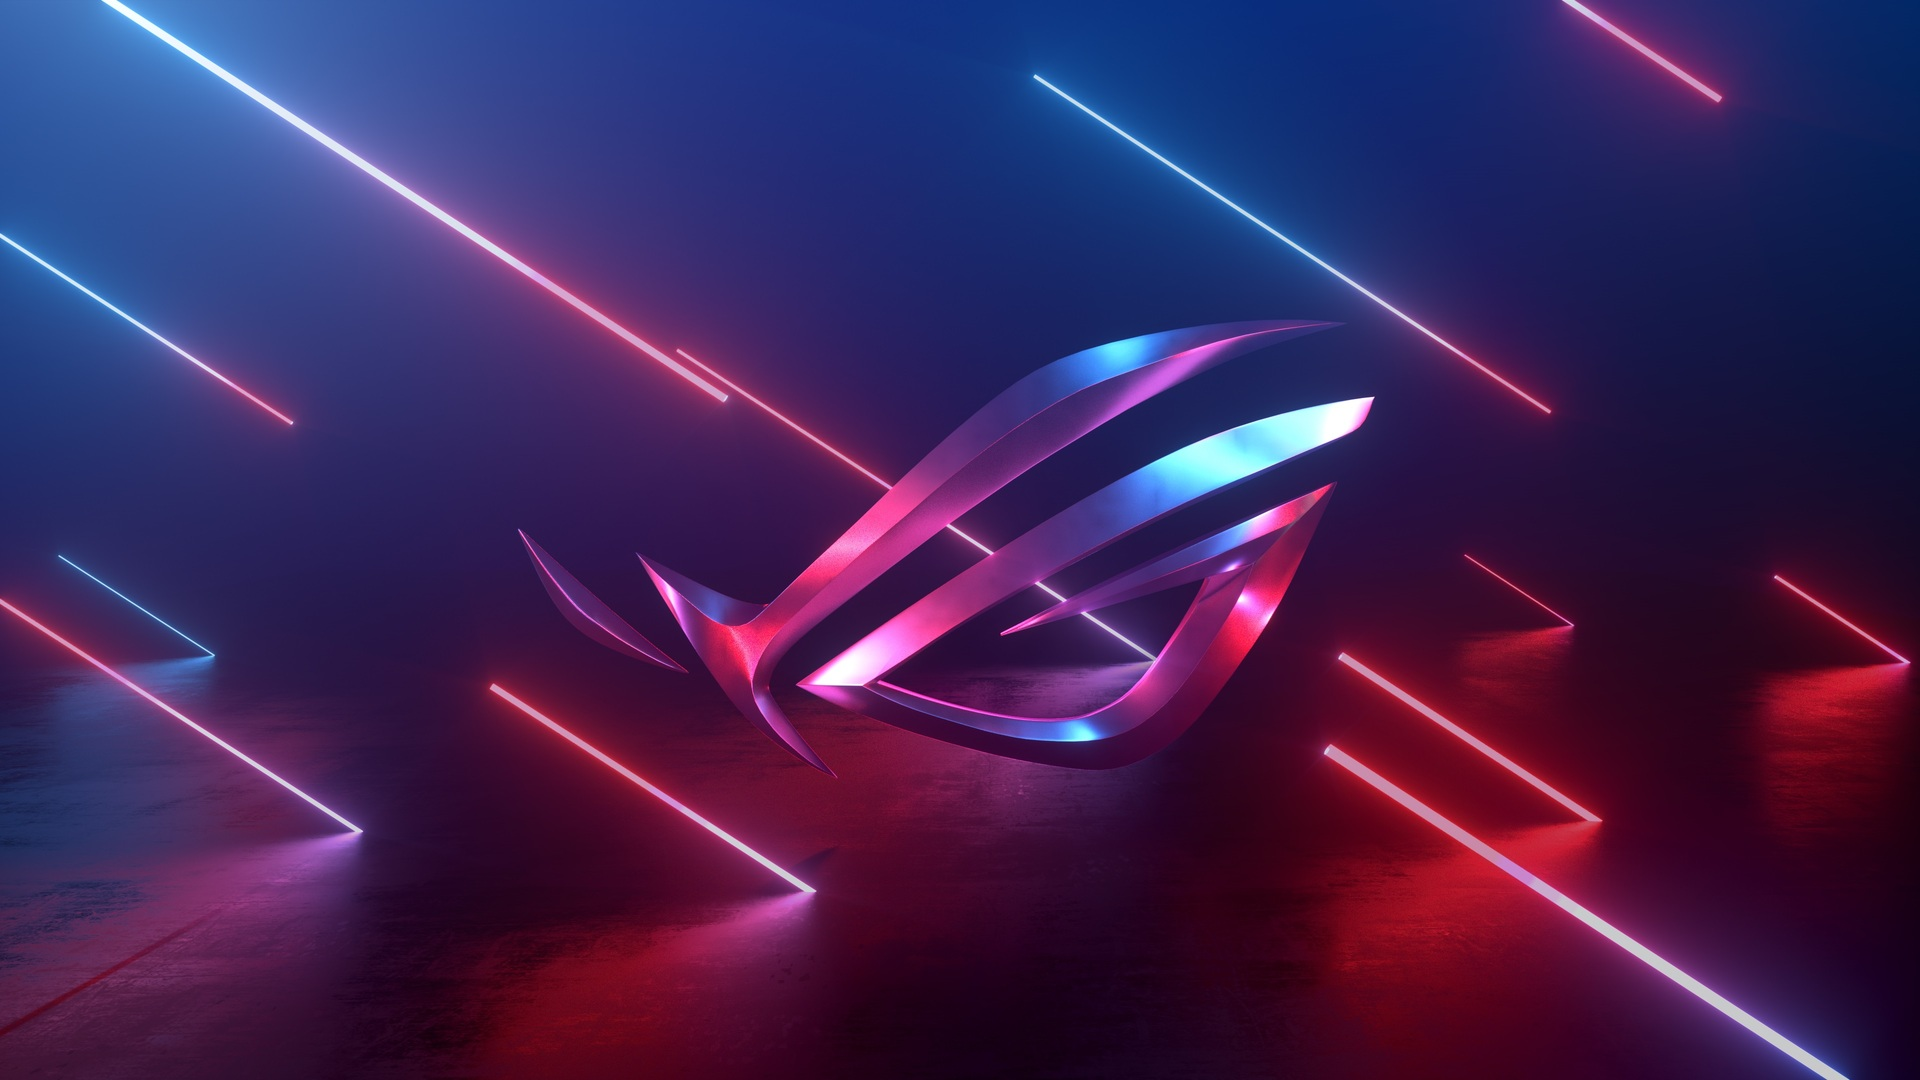 1920x1080 Asus Gamer Rog 4k Laptop Full HD 1080P HD 4k Wallpapers, Images, Backgrounds, Photos ...